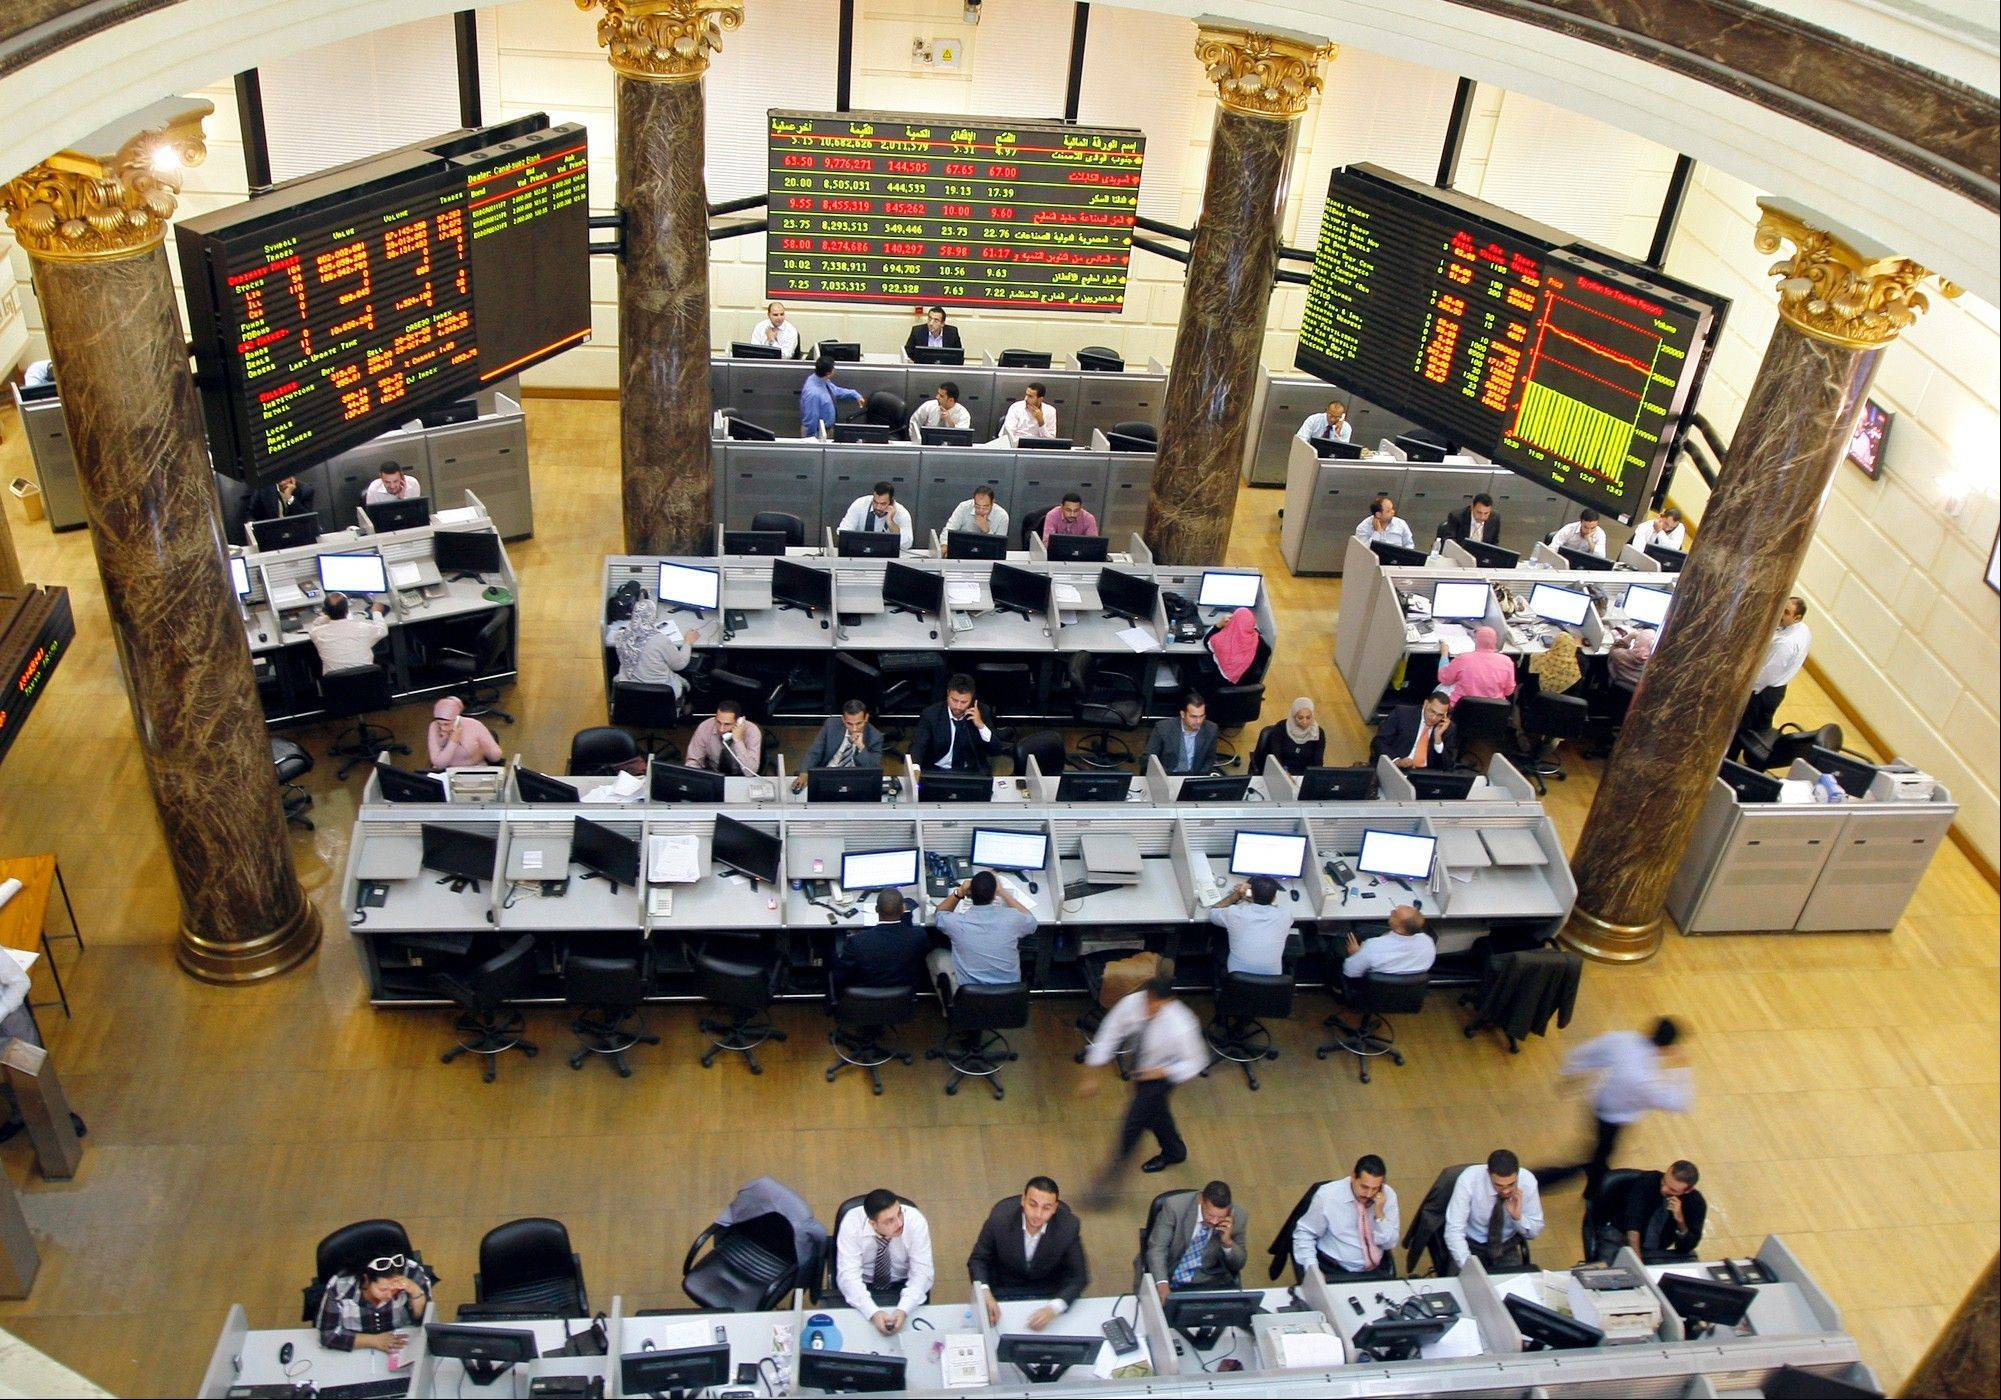 With the opening bell of the country's stock market on Sunday, the first day of the workweek in Egypt, the turmoil spread from the country's bitter politics to its already ailing economy.